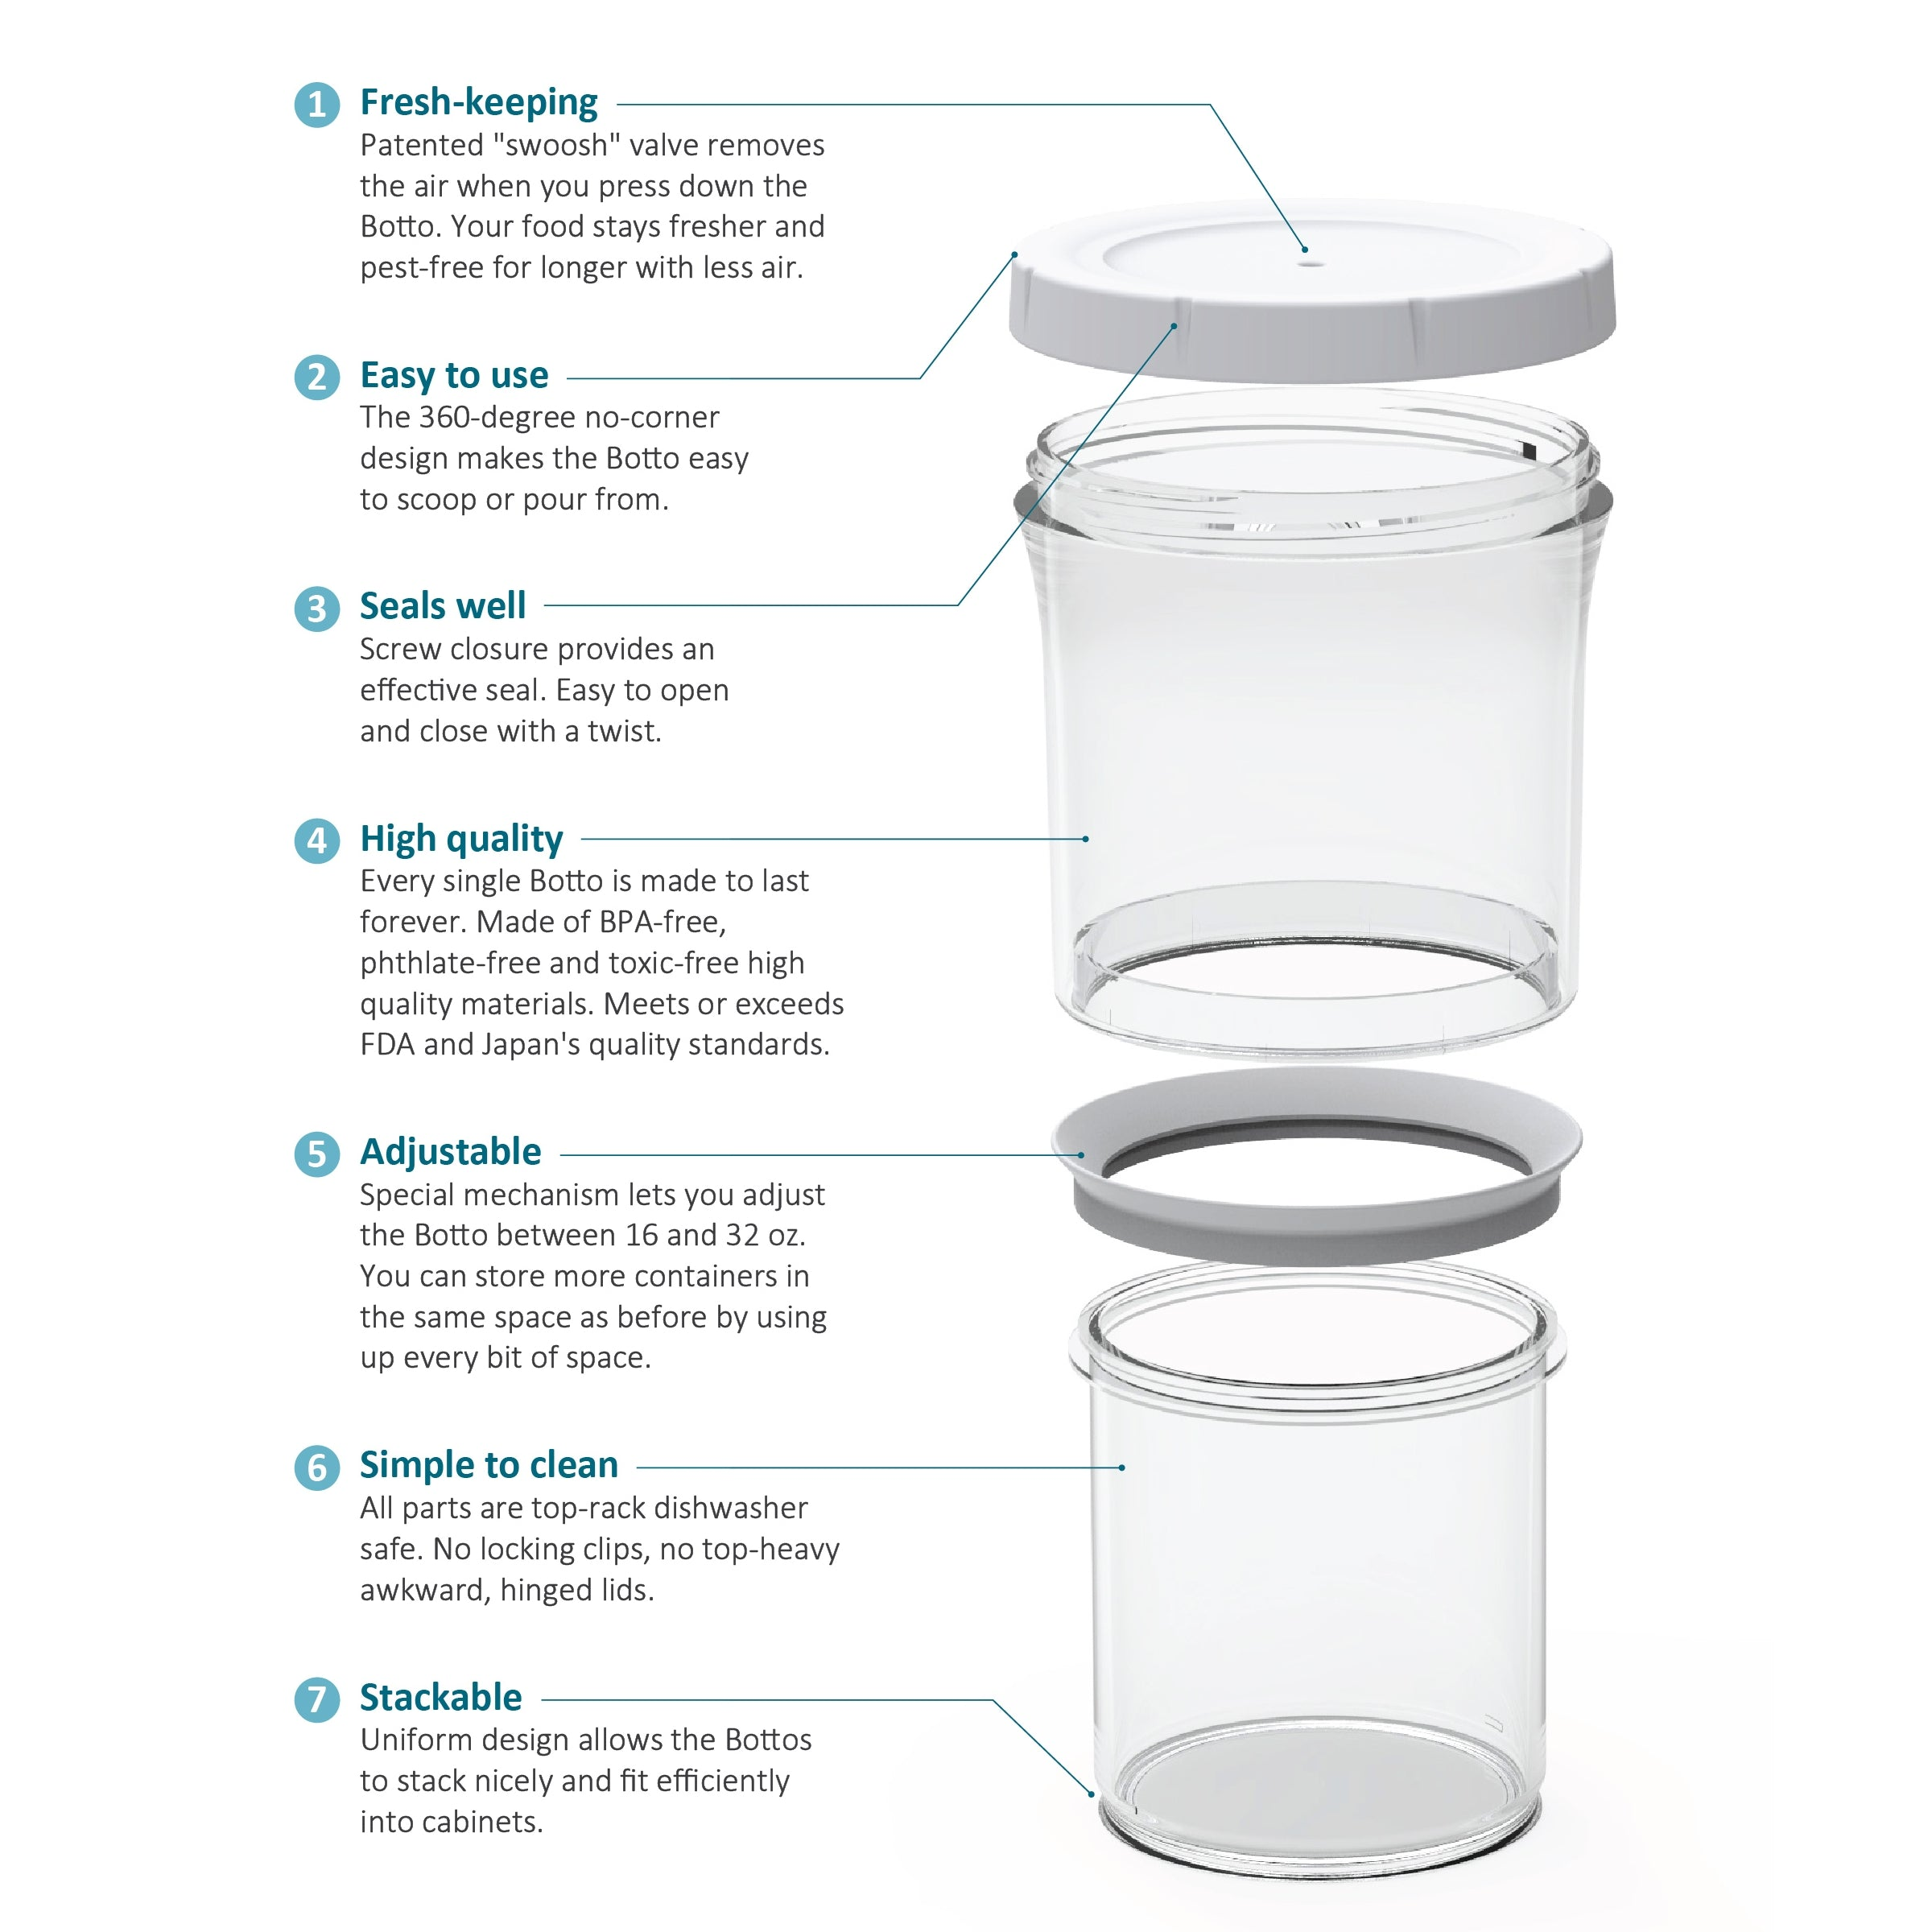 Botto: The Adjustable Container